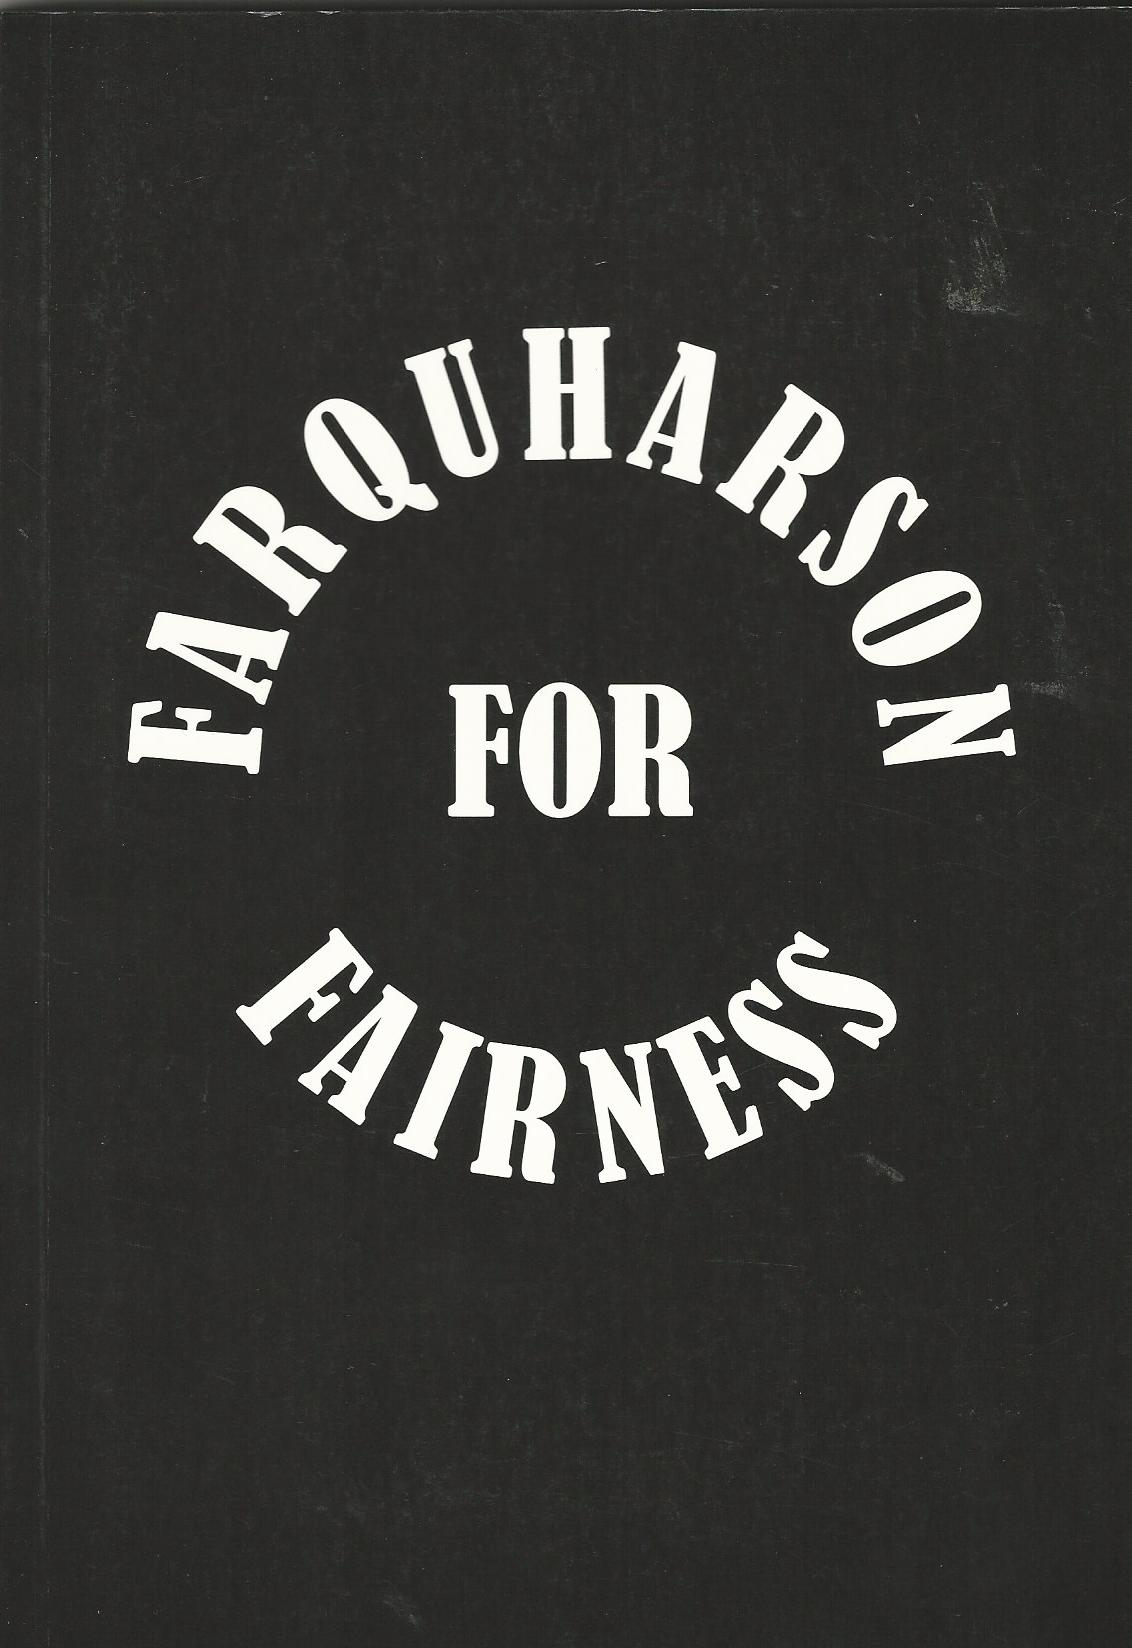 Image for Farquharson For Fairness, Sandy Farquharson: A Tribute